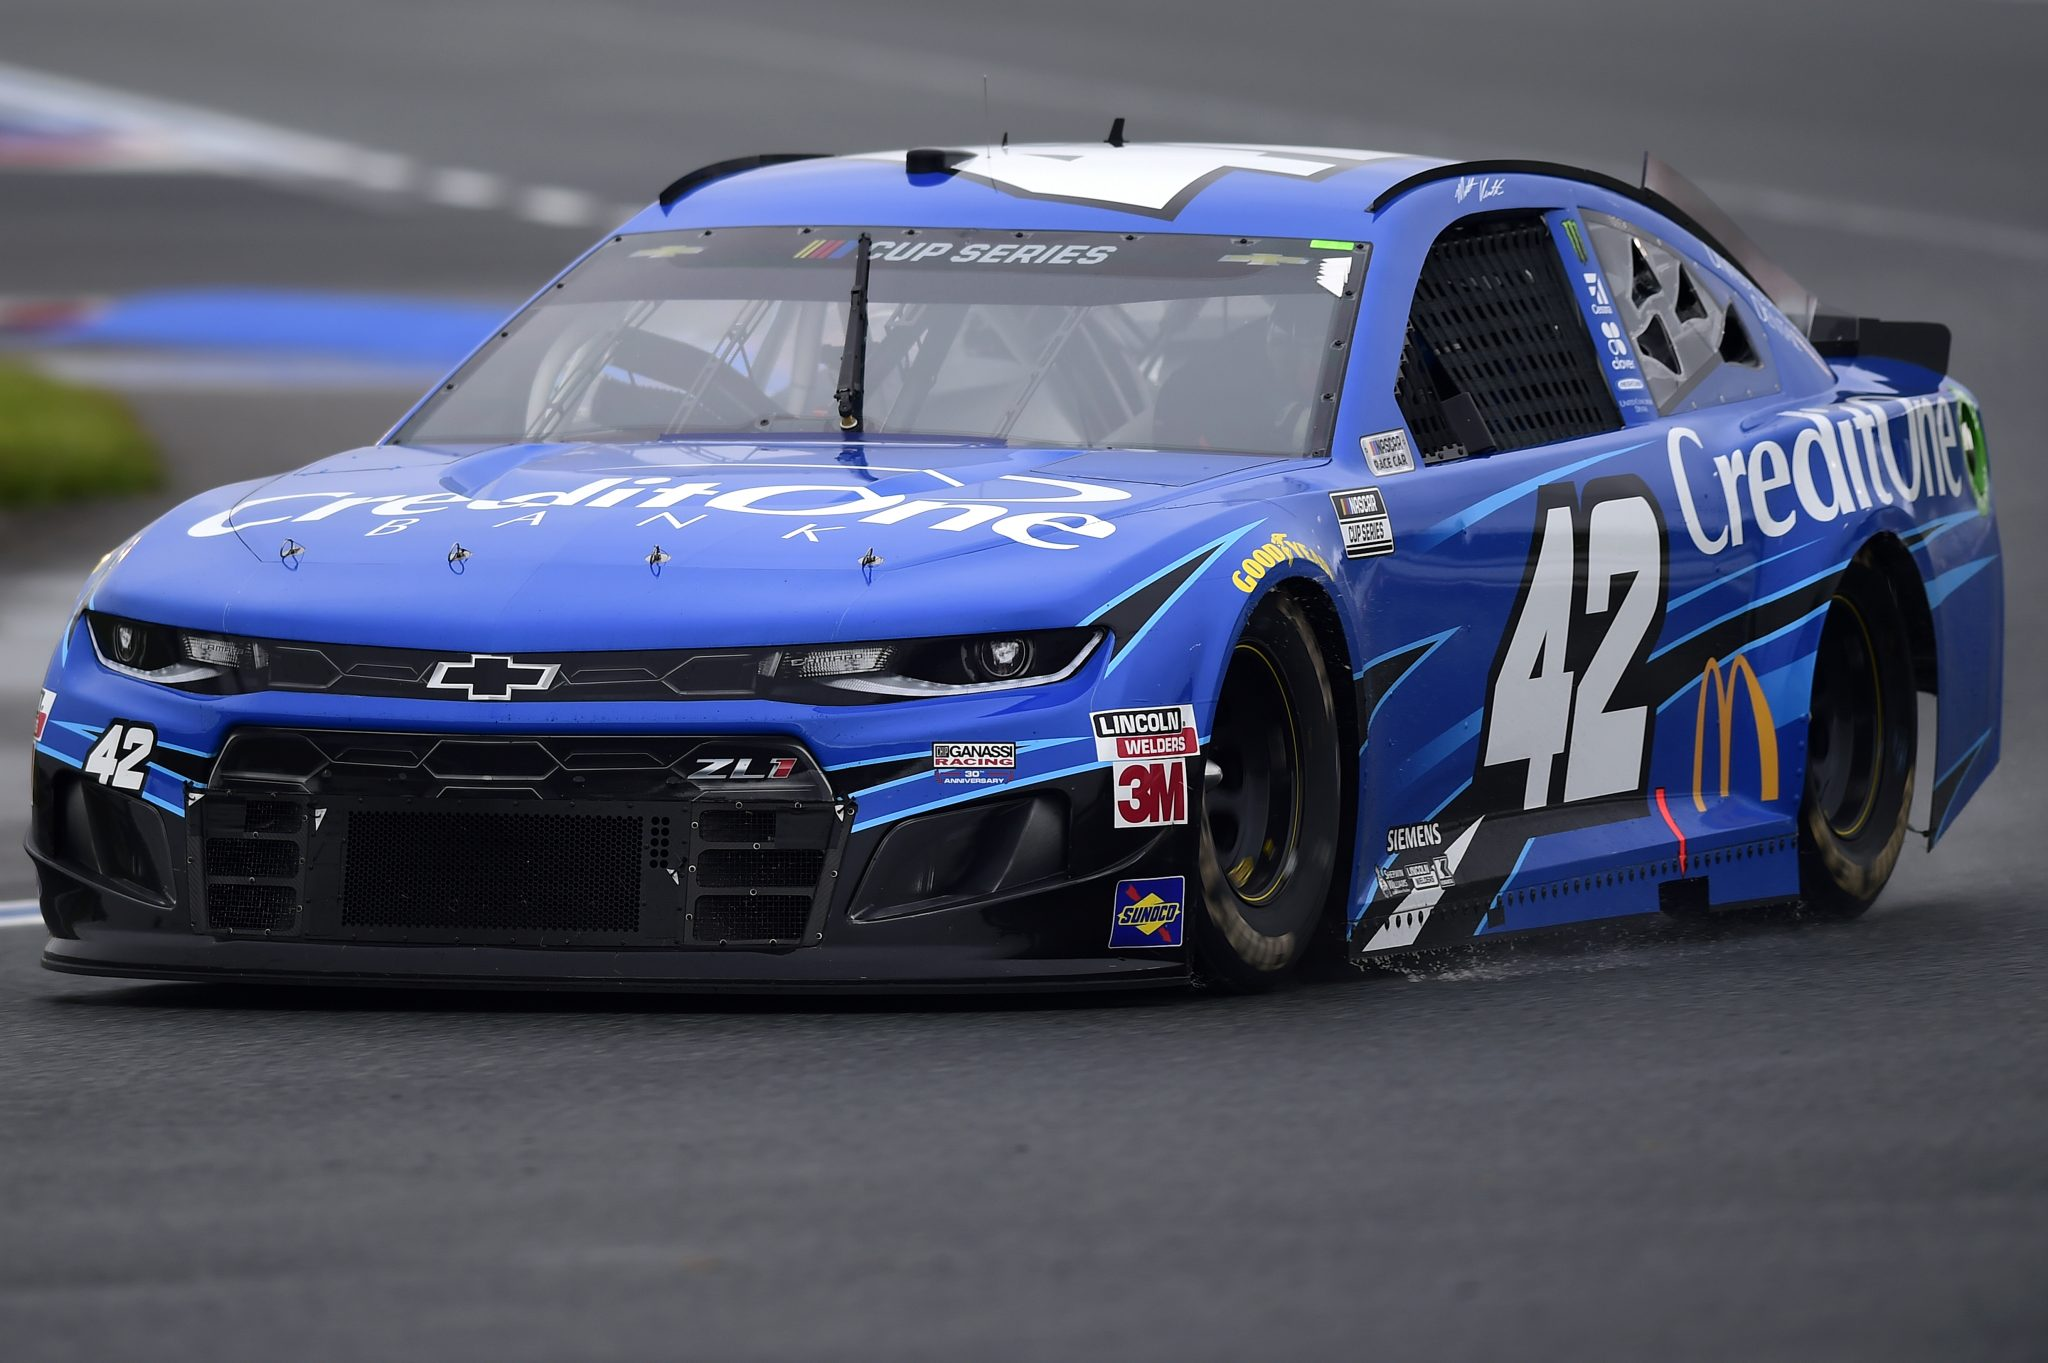 CONCORD, NORTH CAROLINA - OCTOBER 11: Matt Kenseth, driver of the #42 Credit One Bank Chevrolet, drives during the NASCAR Cup Series Bank of America ROVAL 400 at Charlotte Motor Speedway on October 11, 2020 in Concord, North Carolina. (Photo by Jared C. Tilton/Getty Images) | Getty Images